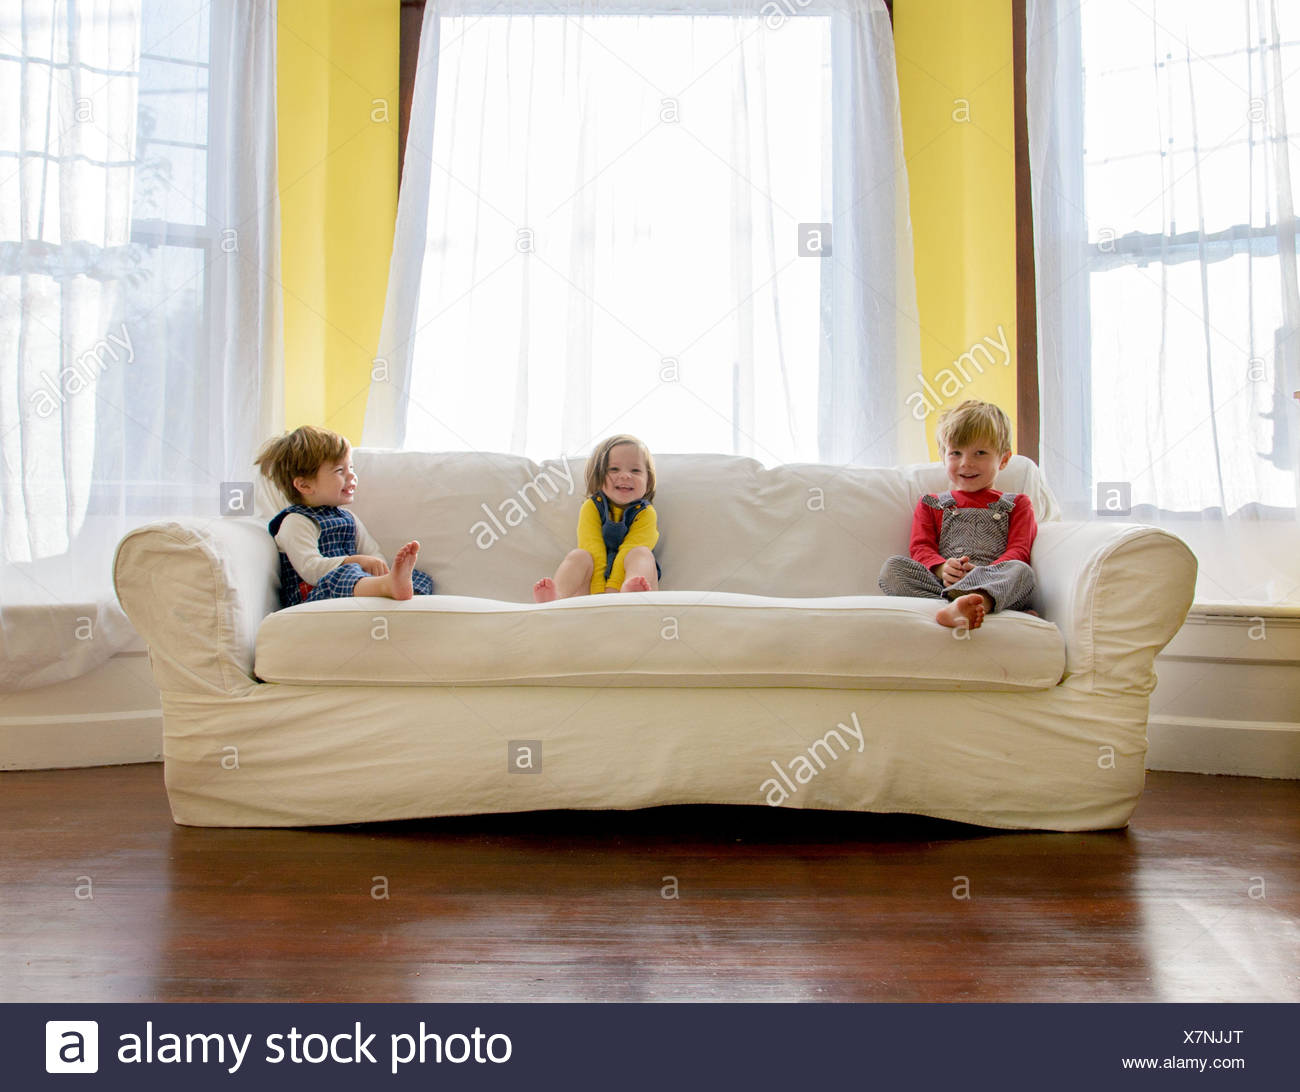 Inflatable Sofa Malta: 3 5 Stock Photos & 3 5 Stock Images